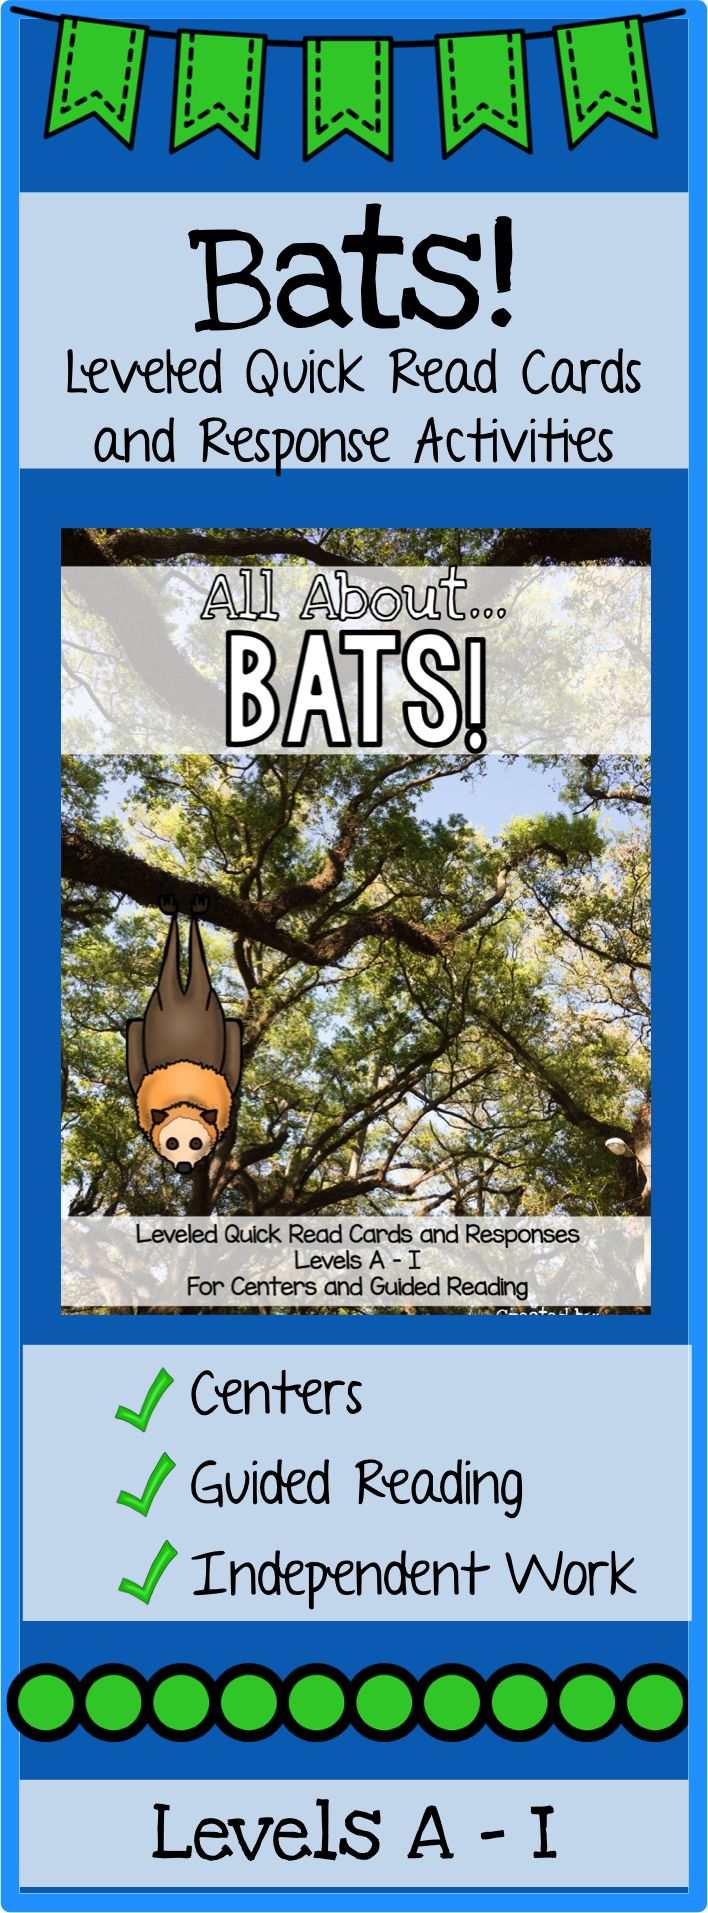 All About Bats! Leveled quick read cards are 5 sets of nonfiction cards about bats. Each set is available at 6 different guided reading level. Designed to put on rings and have at reading centers. These are also great for guided reading and independent work! There are response pages that practice many different comprehension strategies and thinking skills! Leveled A-I